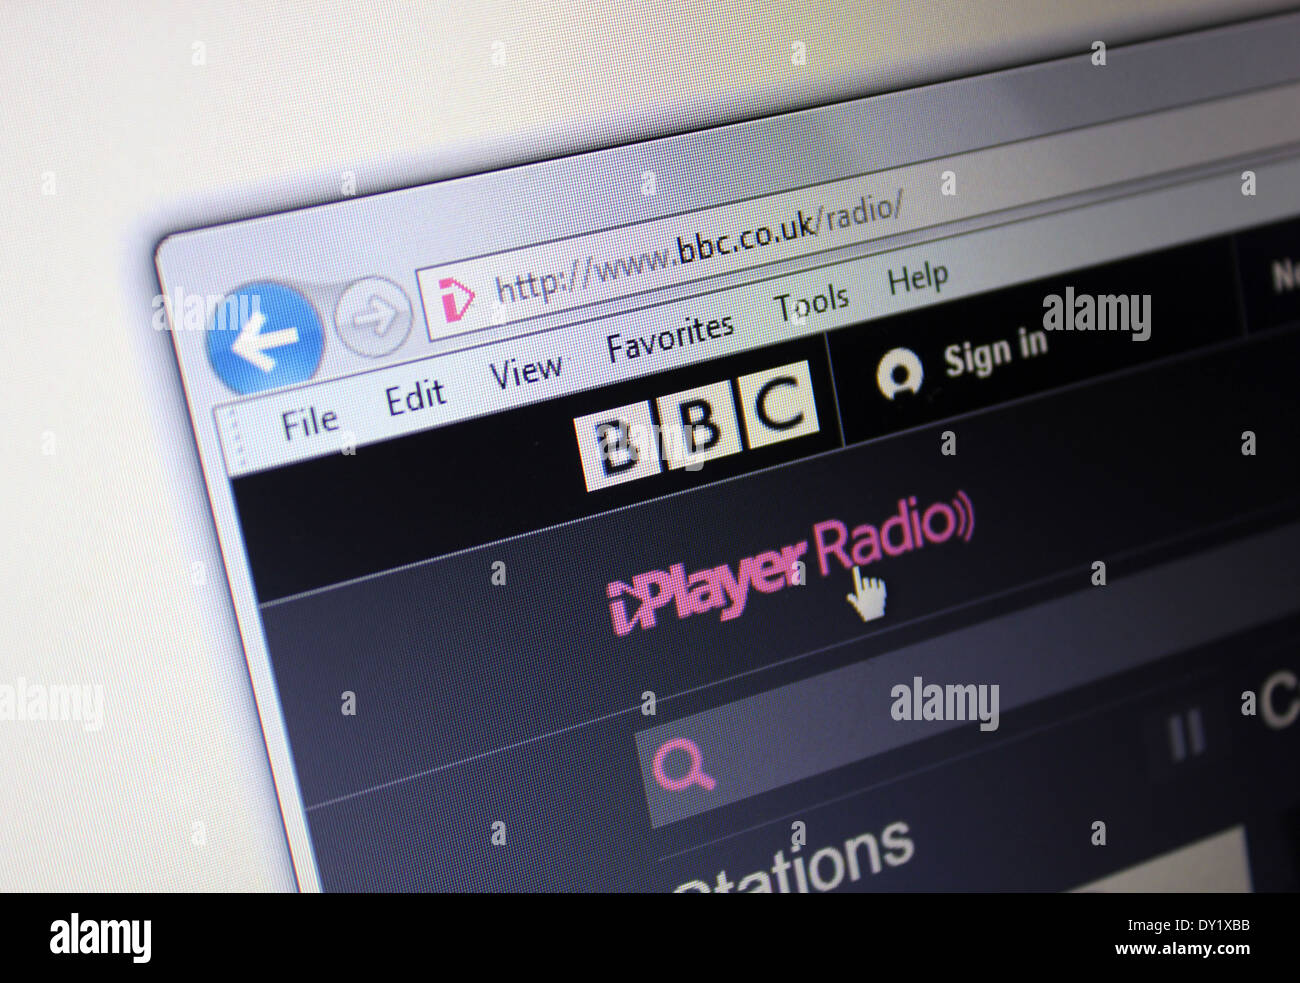 Iplayer Stock Photos   Iplayer Stock Images   Alamy BBC iPlayer website   Stock Image